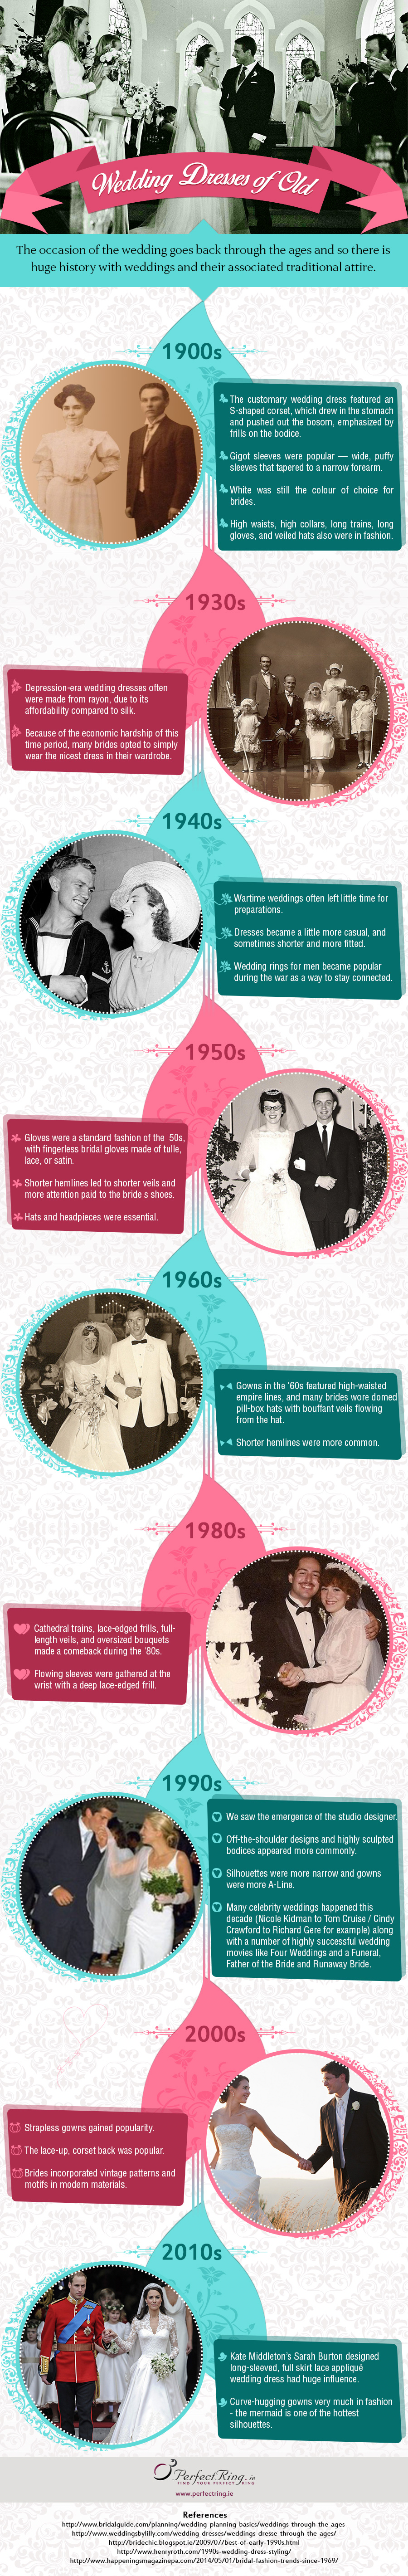 Evolution of the Wedding Dress Infographic